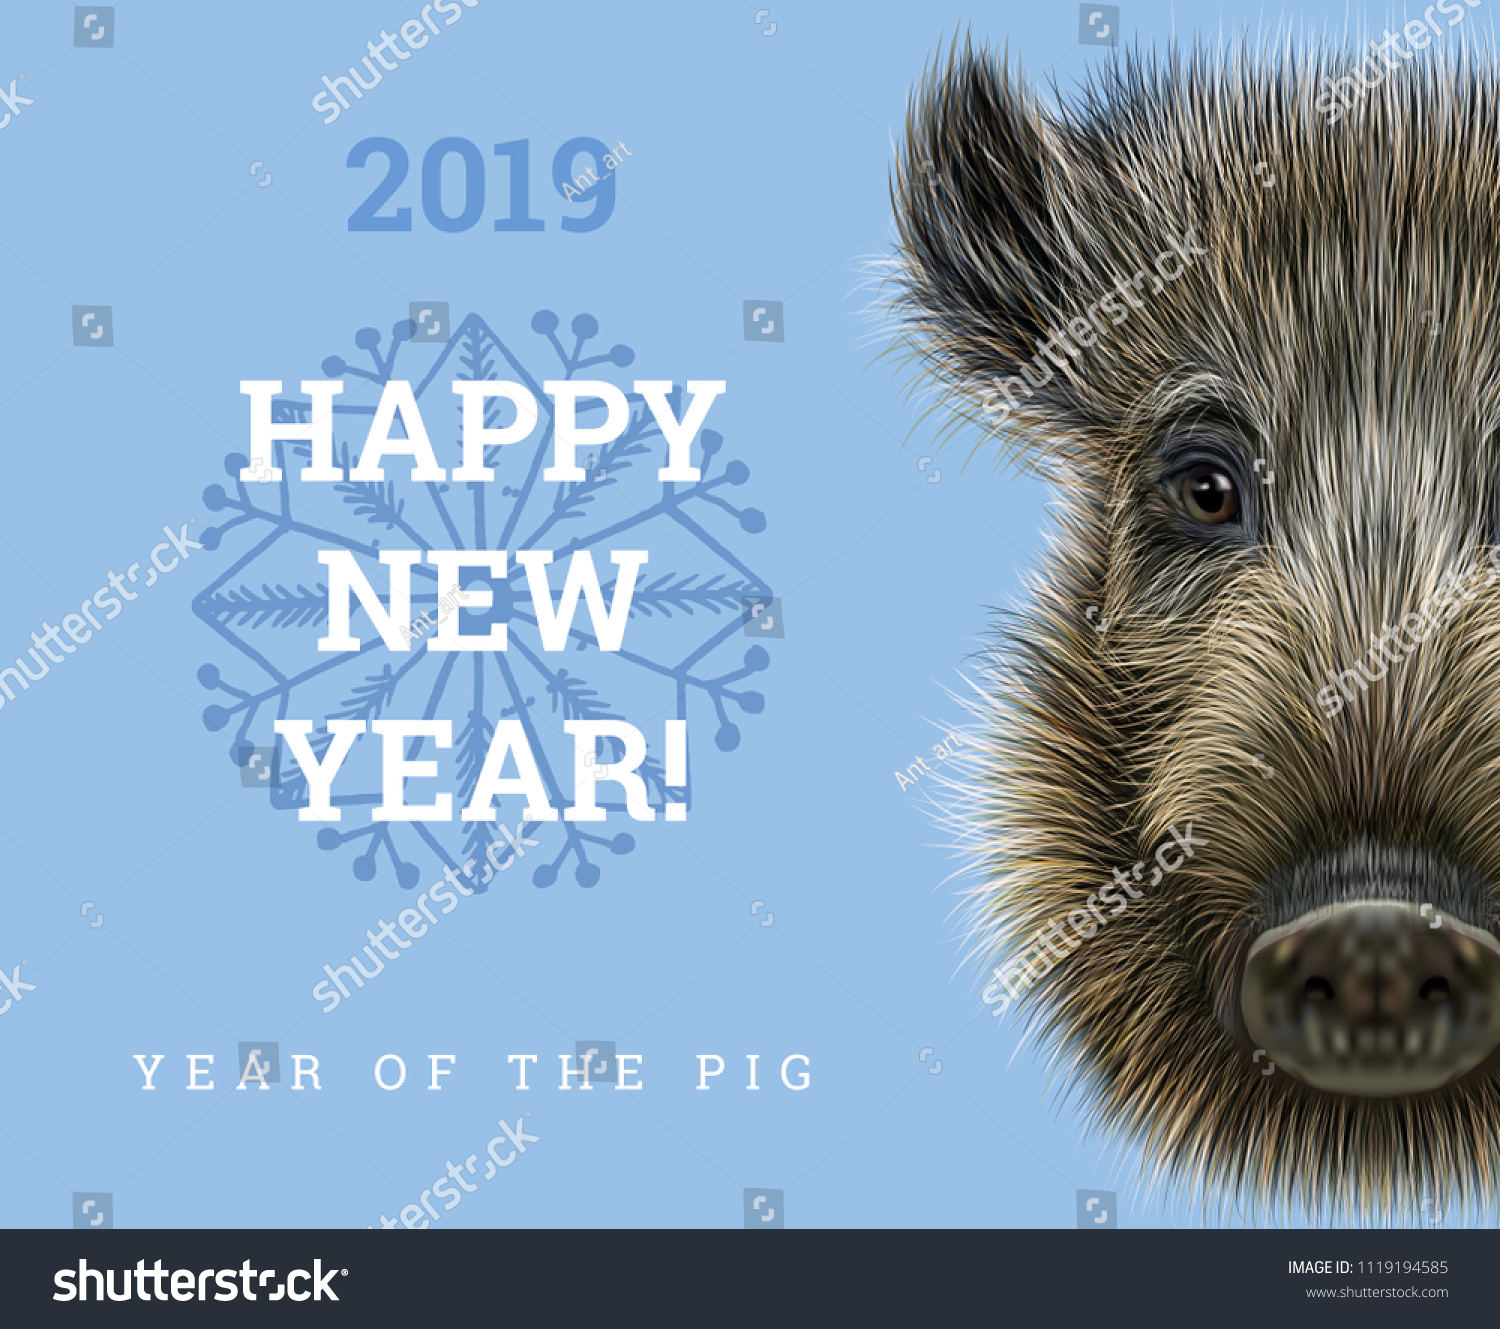 Happy New Year 2019 Year Of The Pig Paper Card